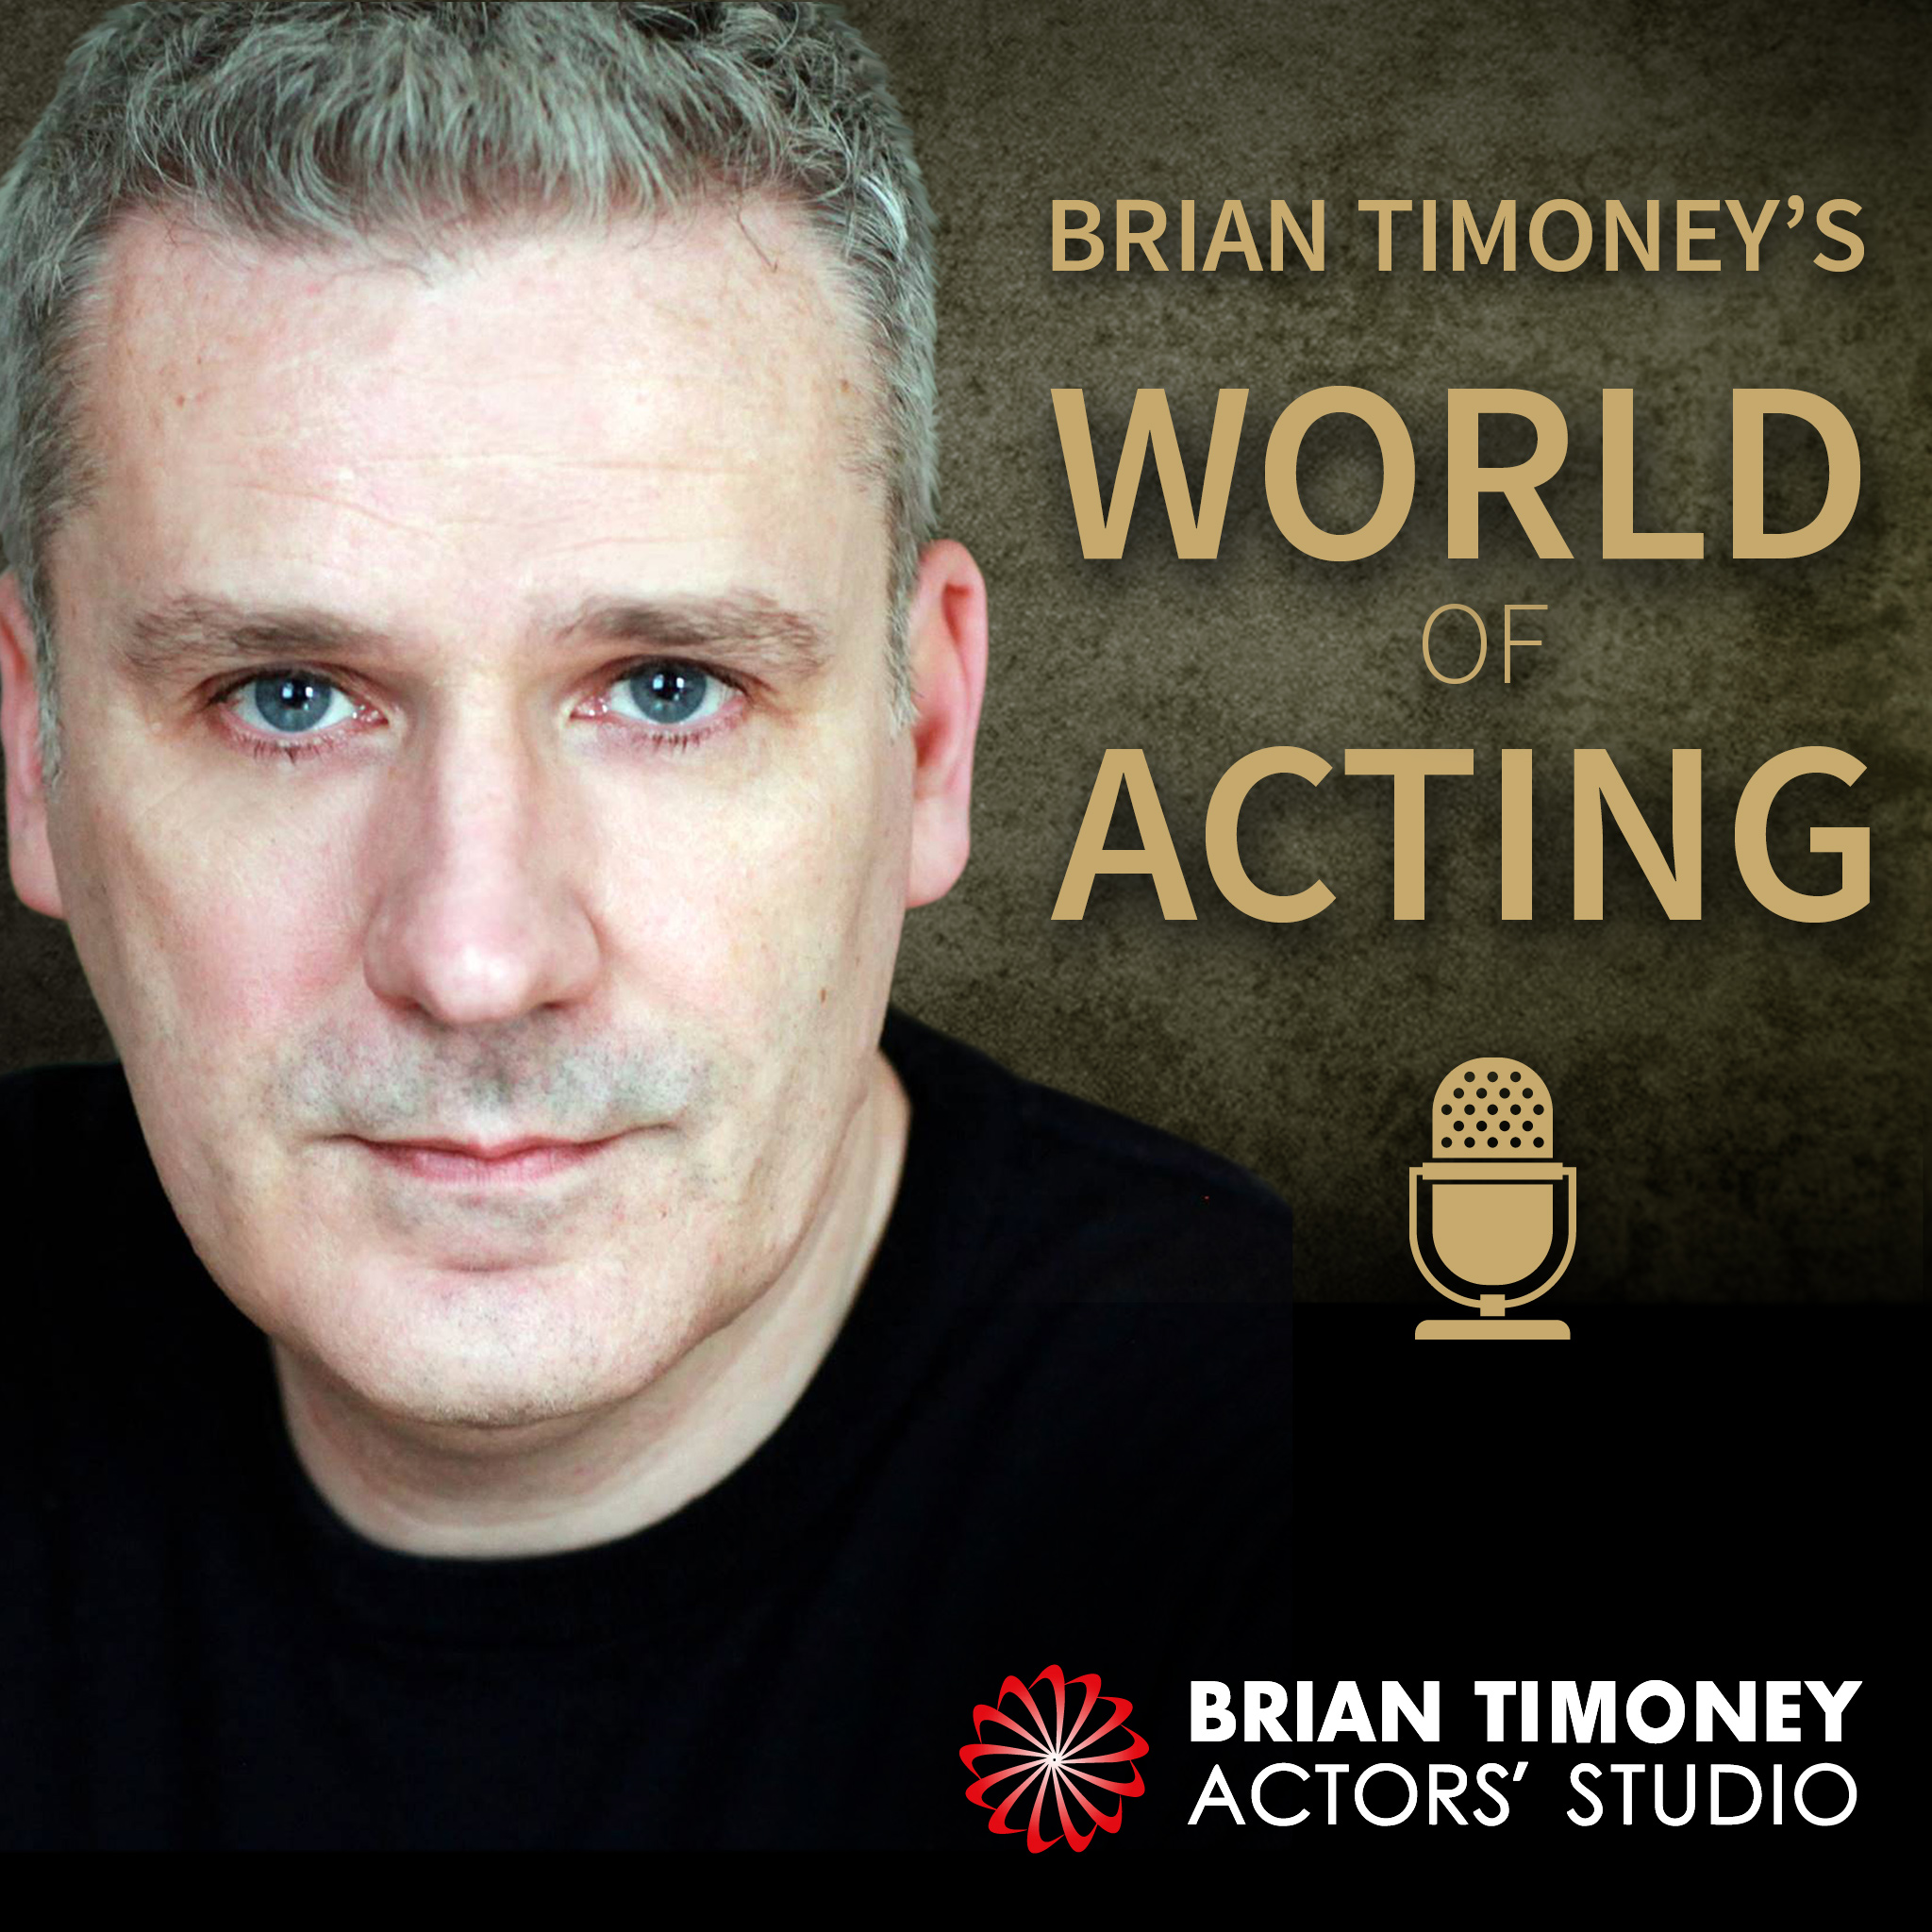 Brian Timoney's World of Acting